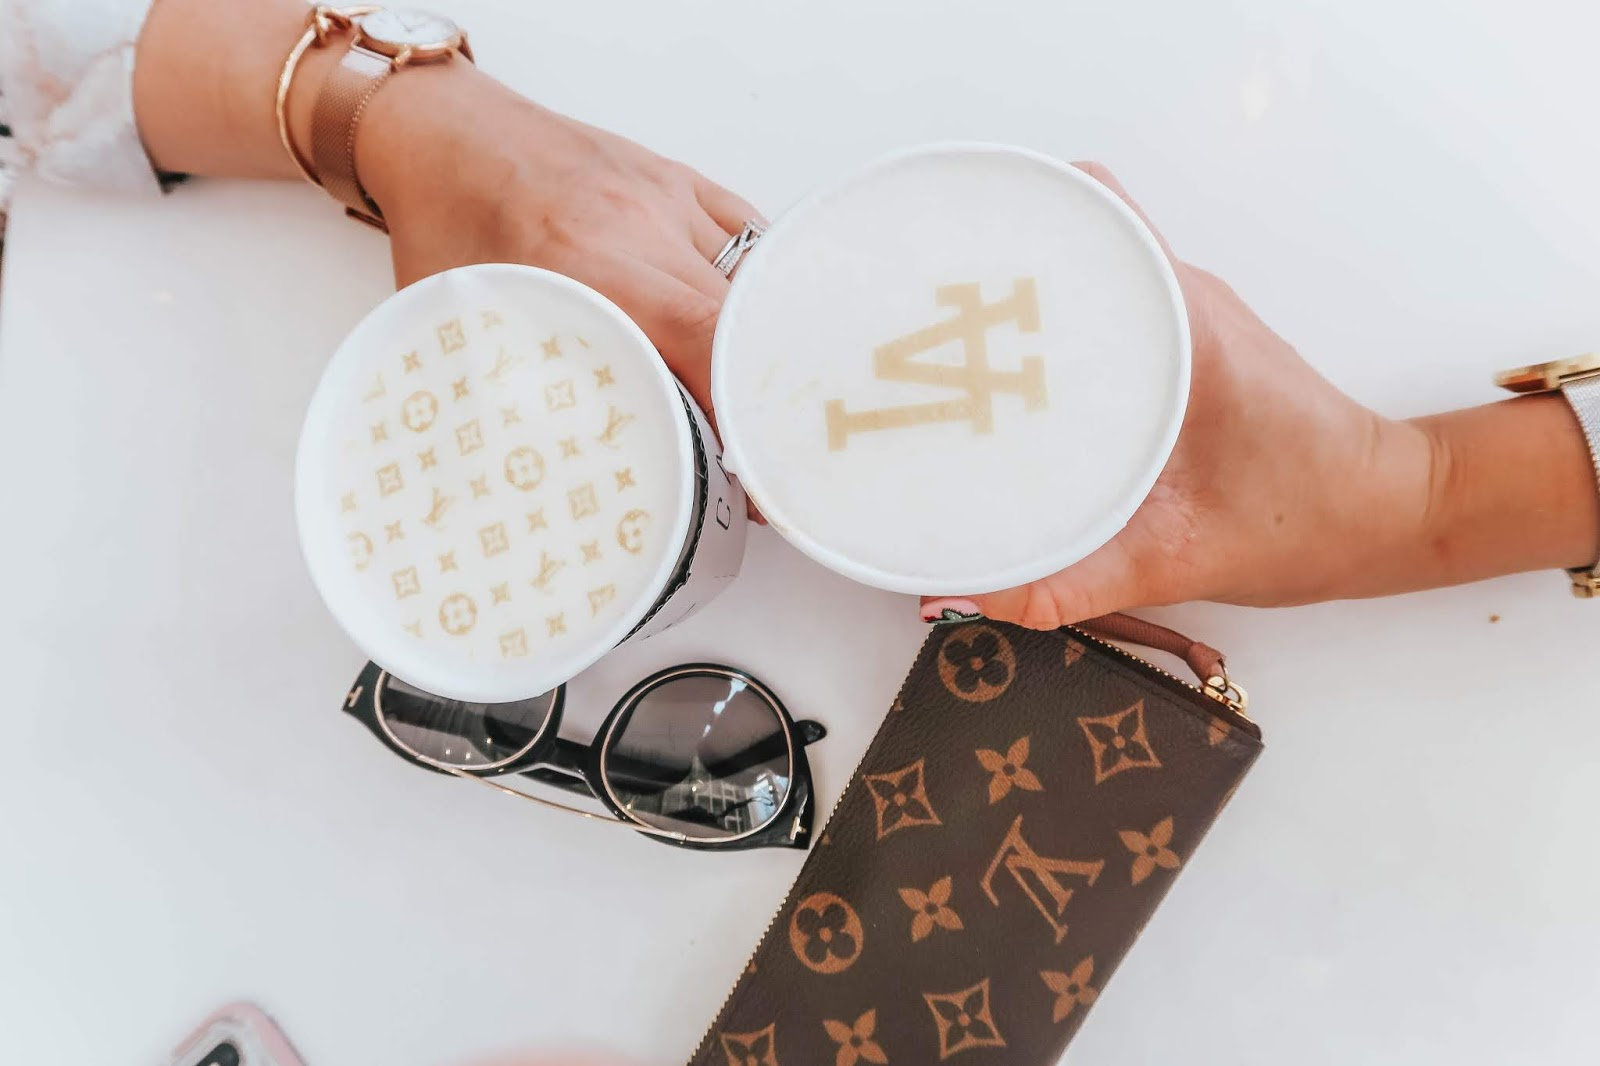 louis vuitton and la coffee at cafe carrera